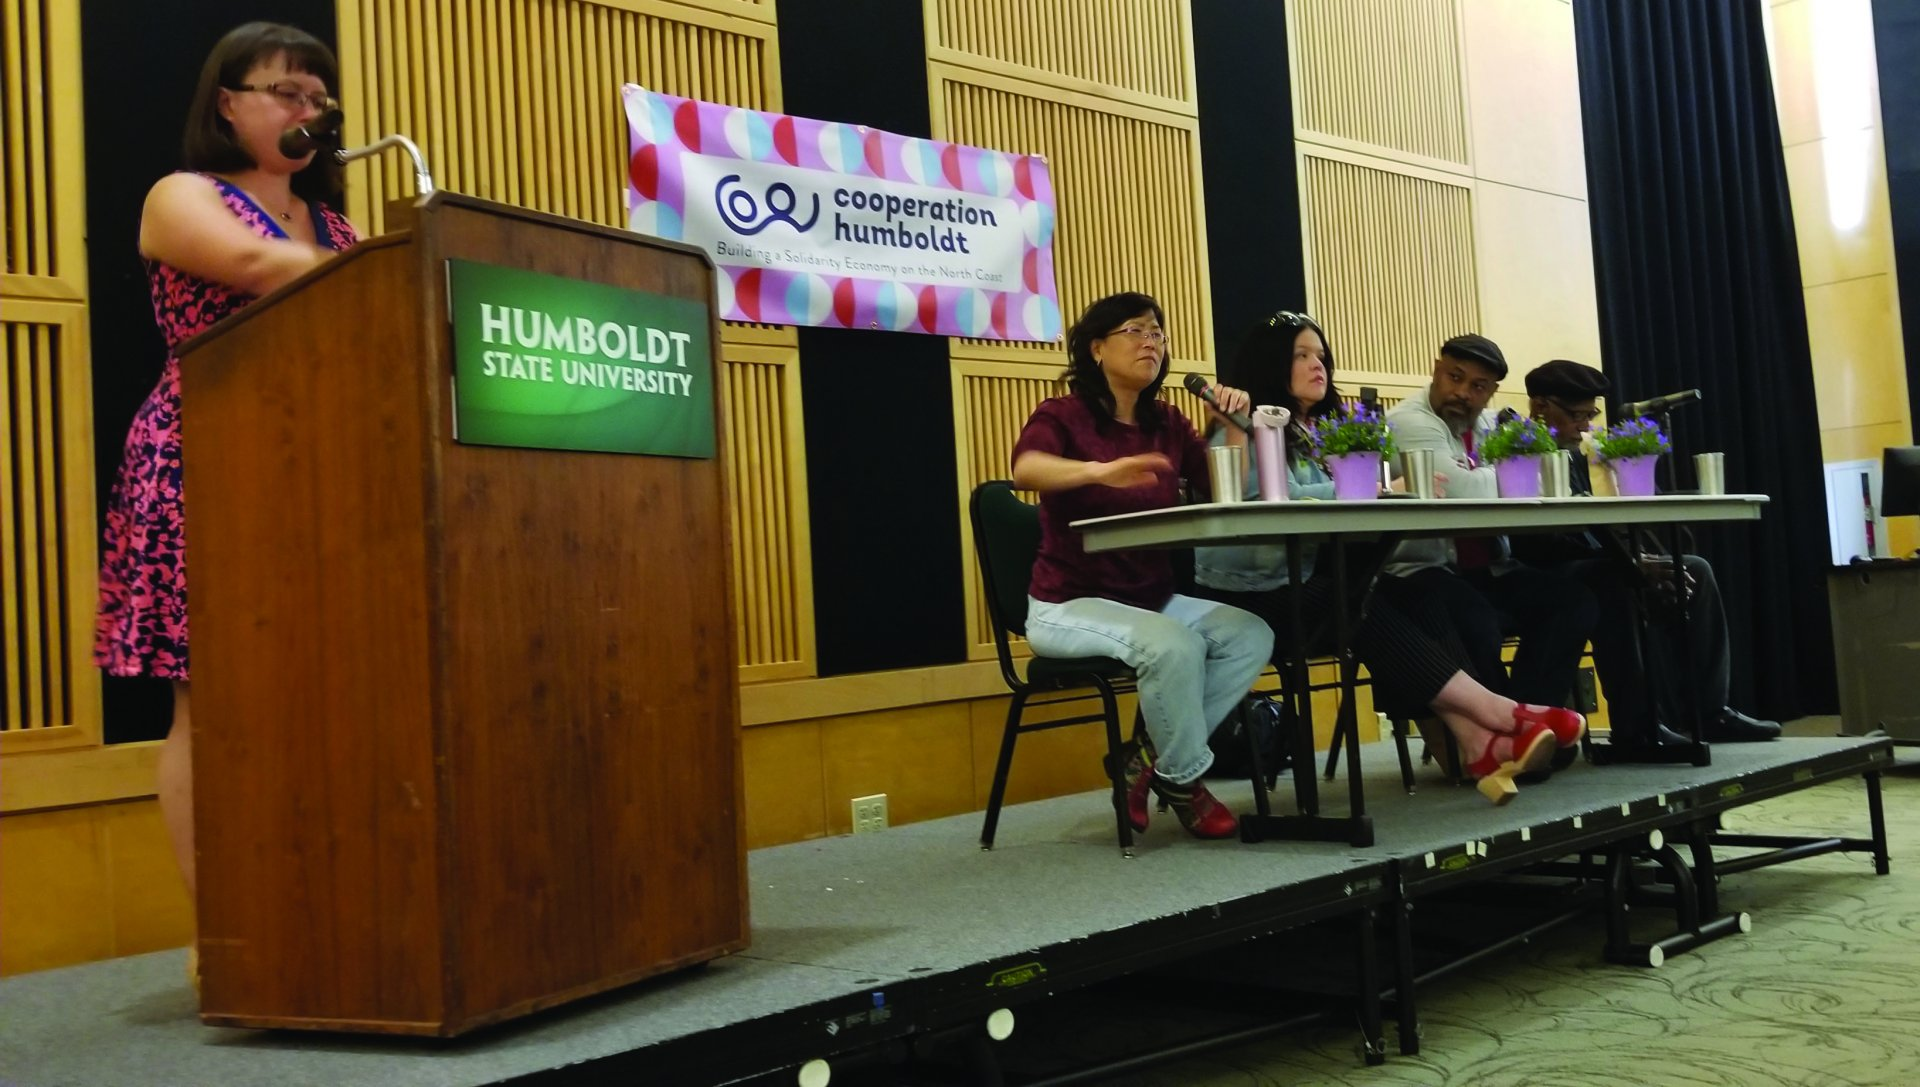 From left to right, Tamera Mcfarland, Emily Kawano, Cutcha Risling Baldy, Kali Akuno, and Jarome Scott on stage at the night of Cooperation Humboldt. | Photo by Luis Lopez